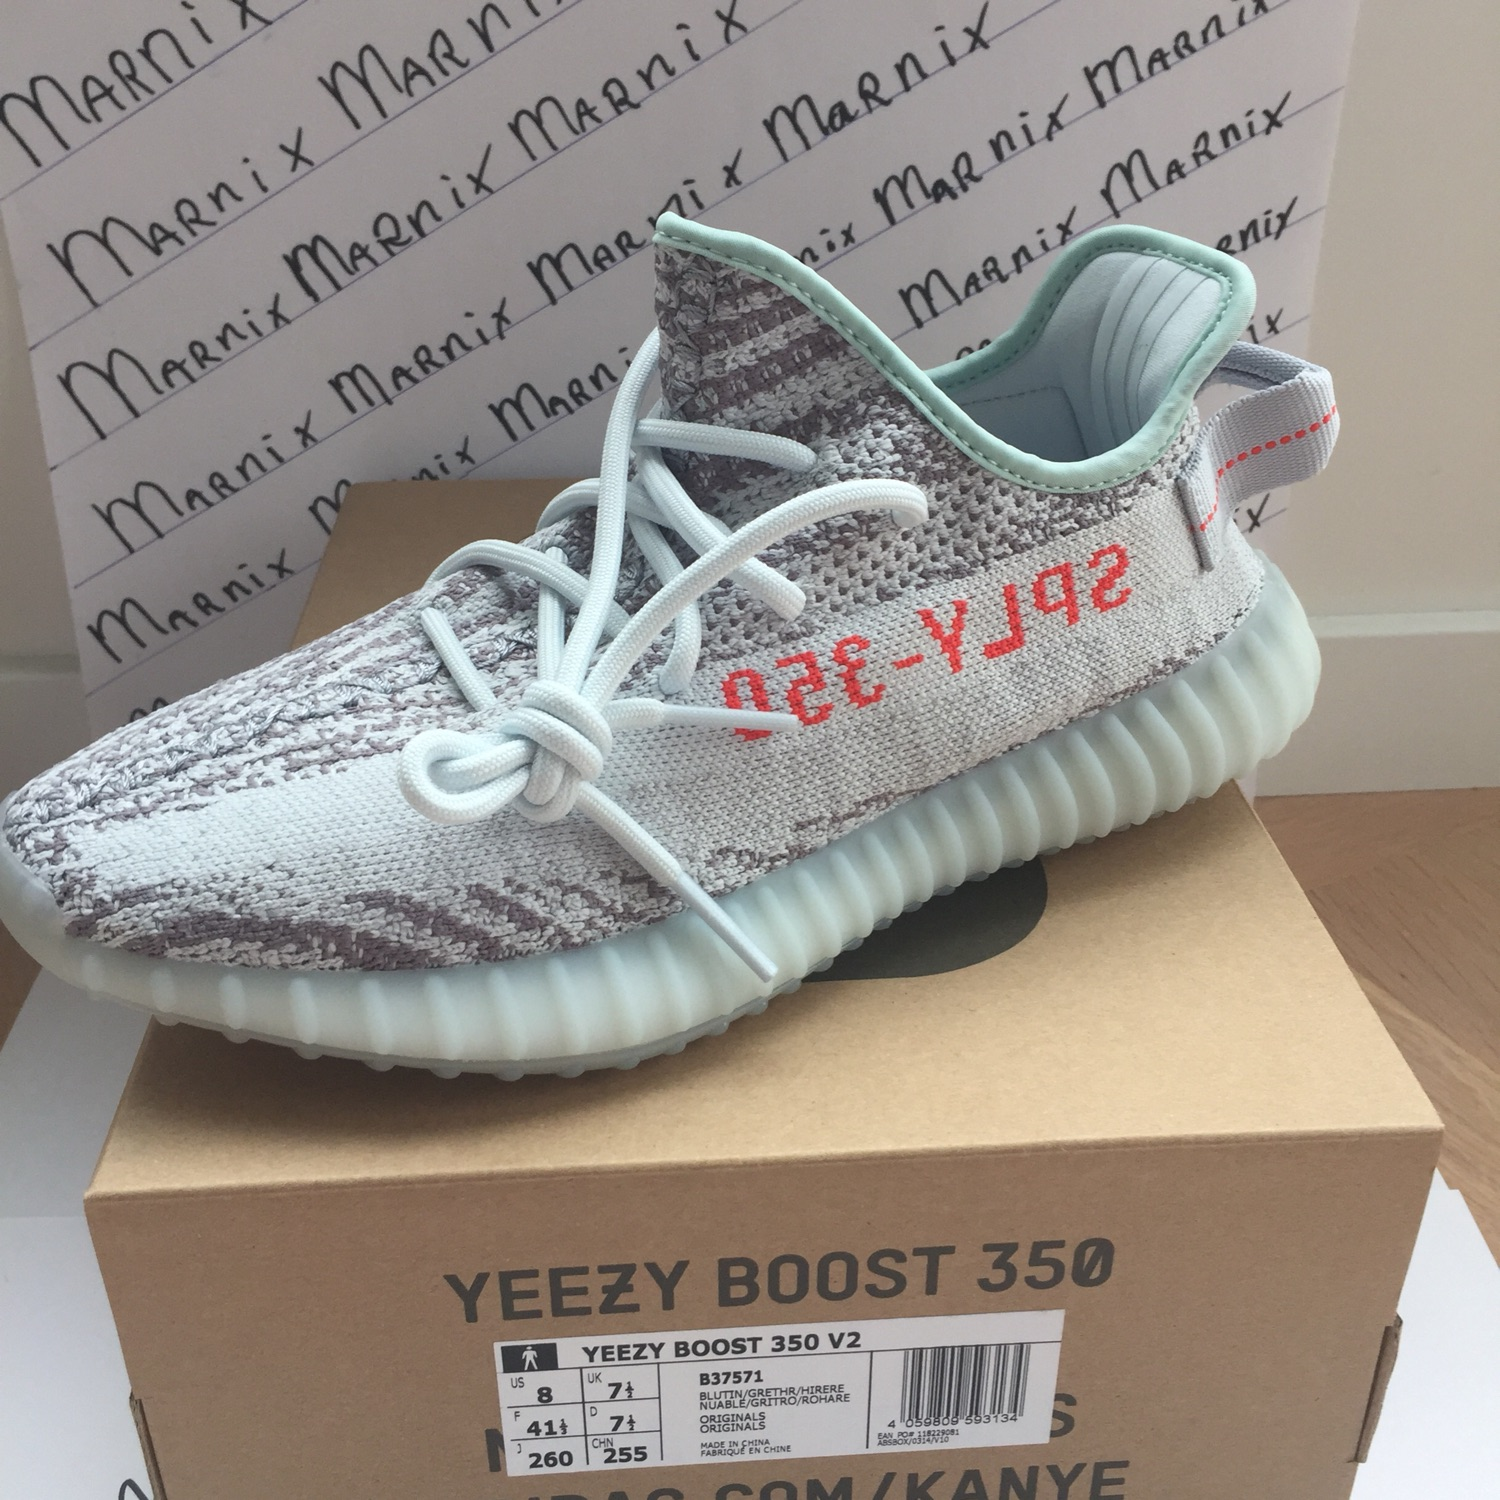 a2abeb6f0c55b Yeezy Boost 350 Blue Tint 7 1 2 Uk 8 Us 41 1 3 Eu.